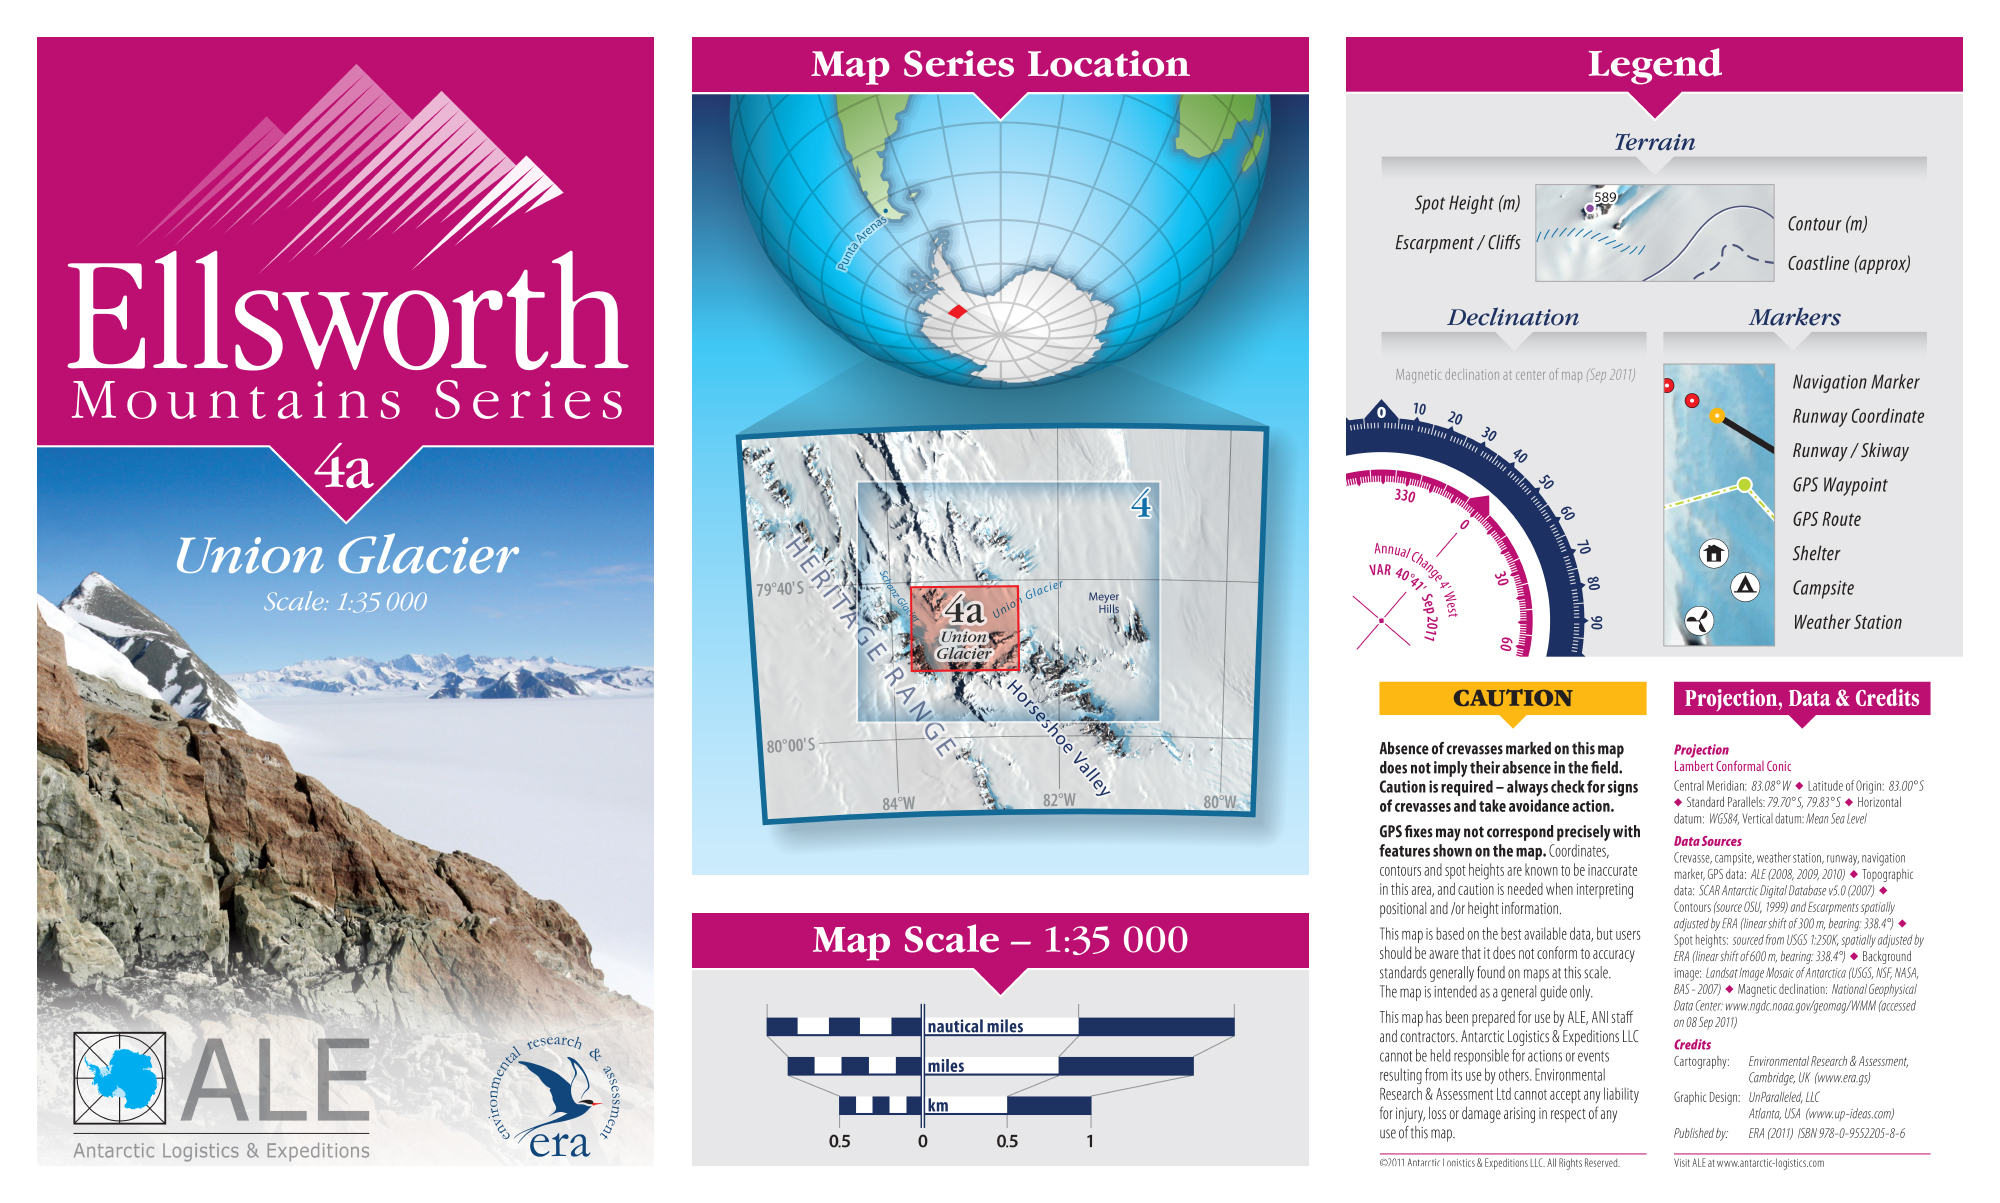 MAP DESIGN - Antarctic Logistics & Expeditions | Ellsworth Mountain Map Series | Legend Panels - ©UnParalleled, LLC dba UP-Ideas / Roger Sawhill / Mark Braught - Atlanta, Georgia | Lawrenceville, Georgia | Commerce, Georgia